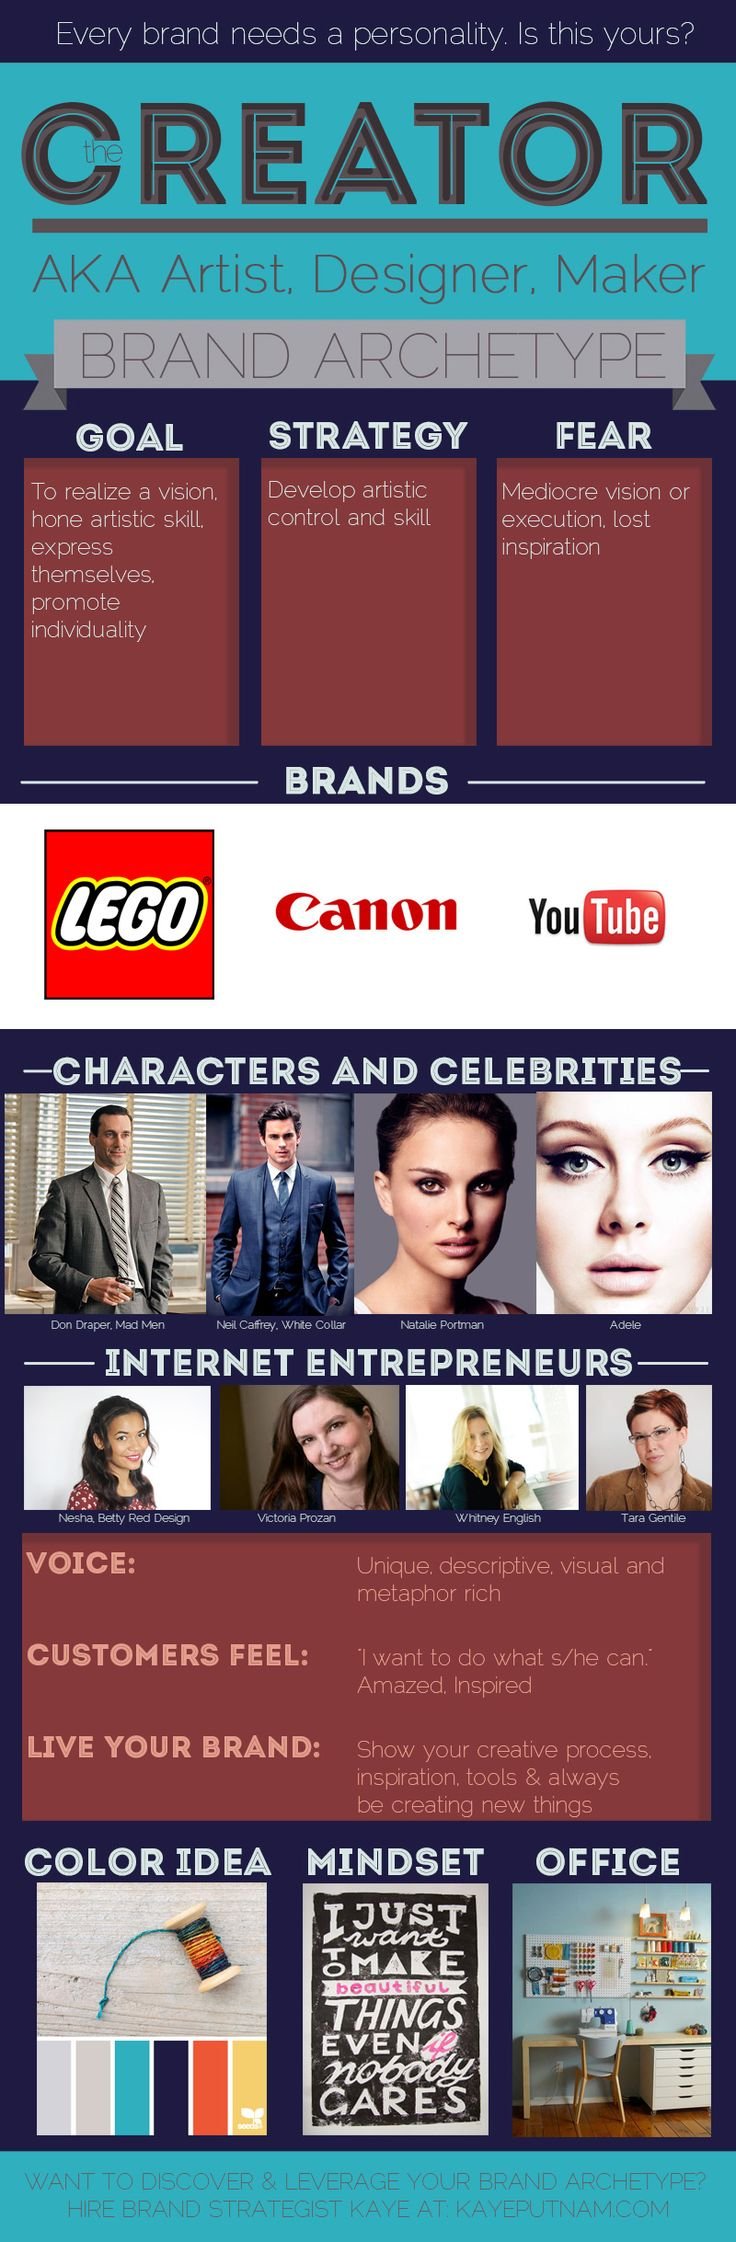 My BRANDALITY (brand personality) archetype is the creator. Find out yours >> http://kayeputnam.com/brandality-quiz/